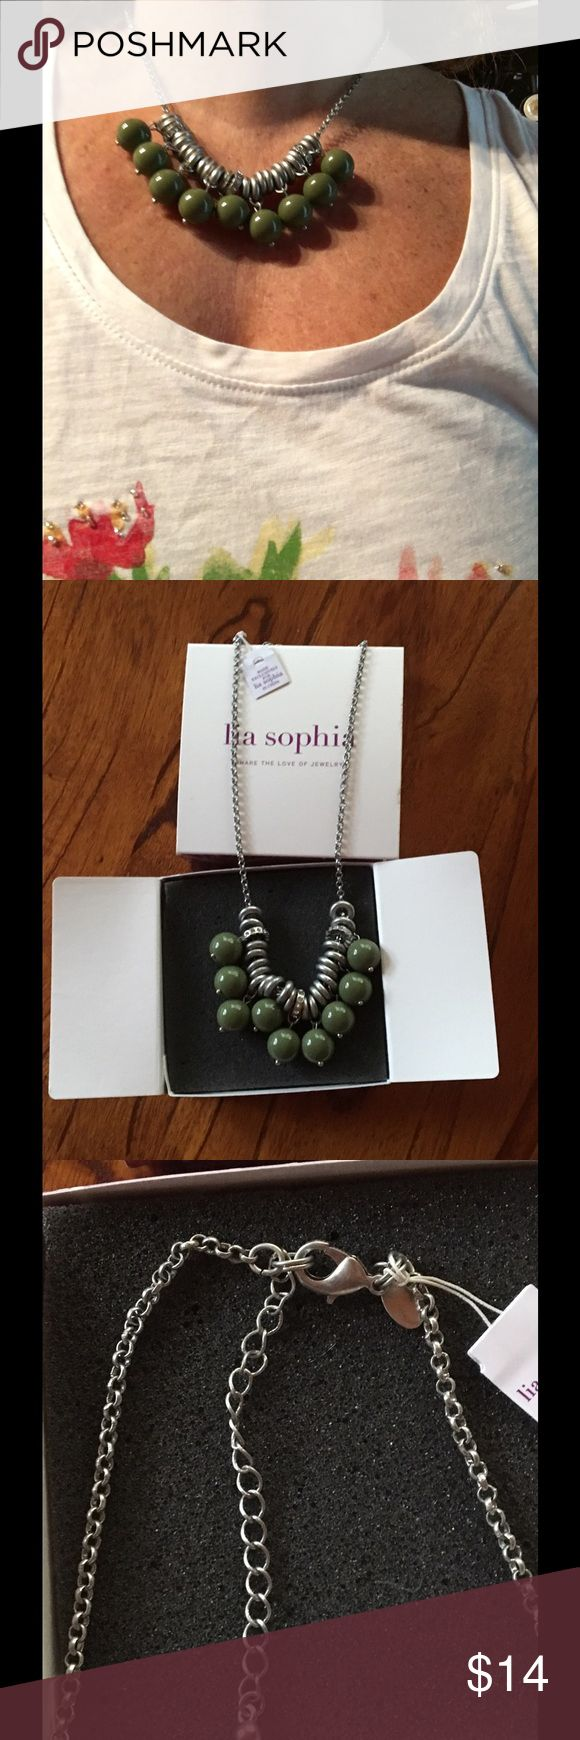 PRICE DROP! Lia Sophia Statement Necklace Brand new Lia Sophia necklace with moving olive green beads. Accented with three crystal rings. Lobster claw clasp and several loops to adjust length. Lia Sophia Jewelry Necklaces